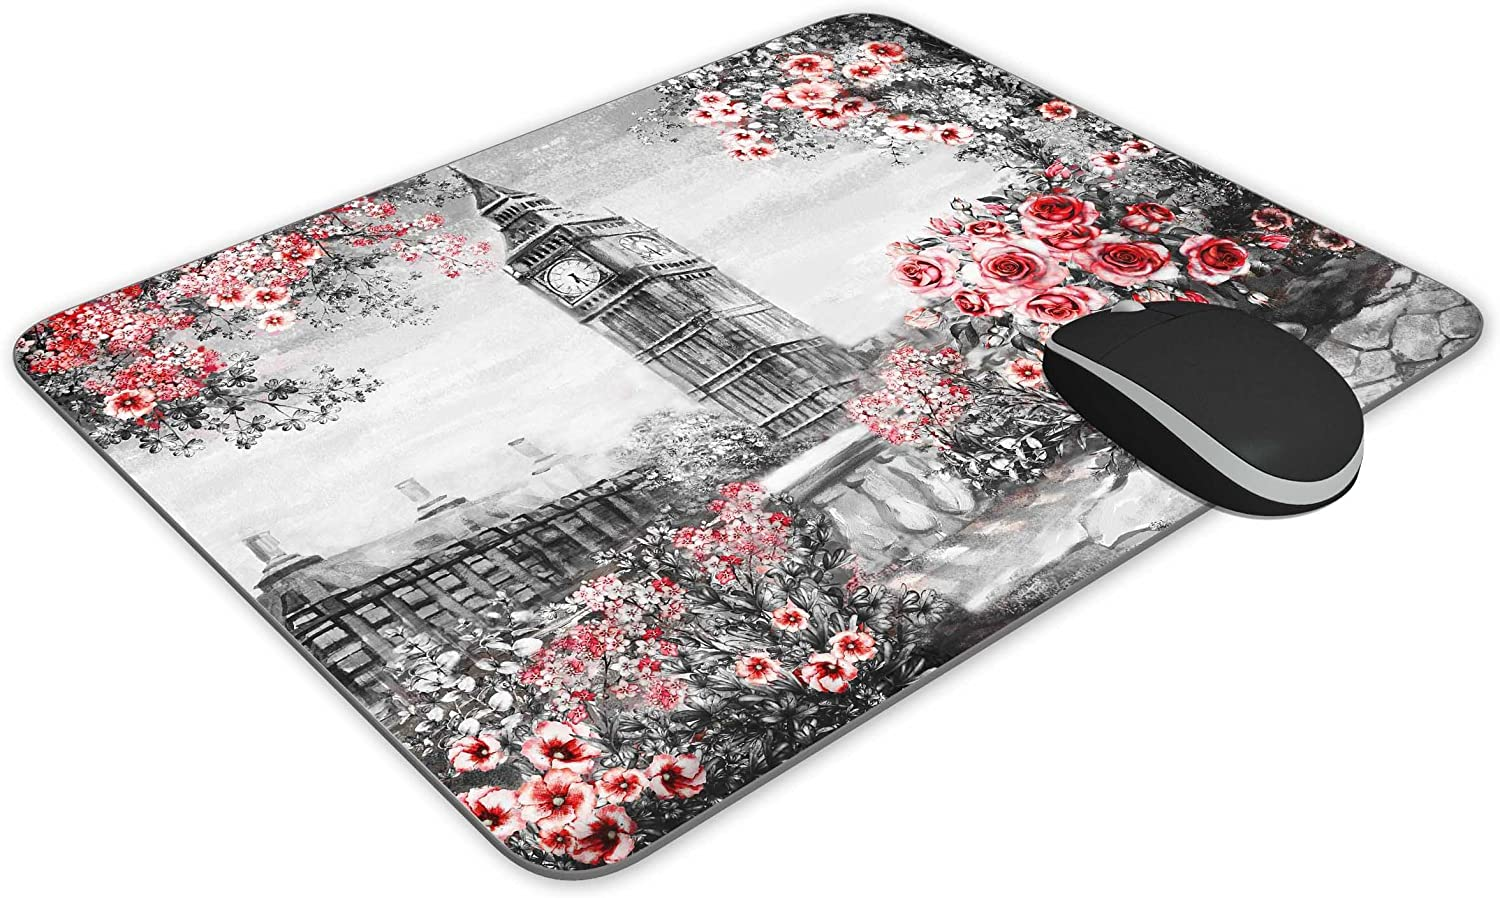 KingKang Oil Painting Summer in London Mouse Pad Office Mouse Pad Gaming Mouse Pad